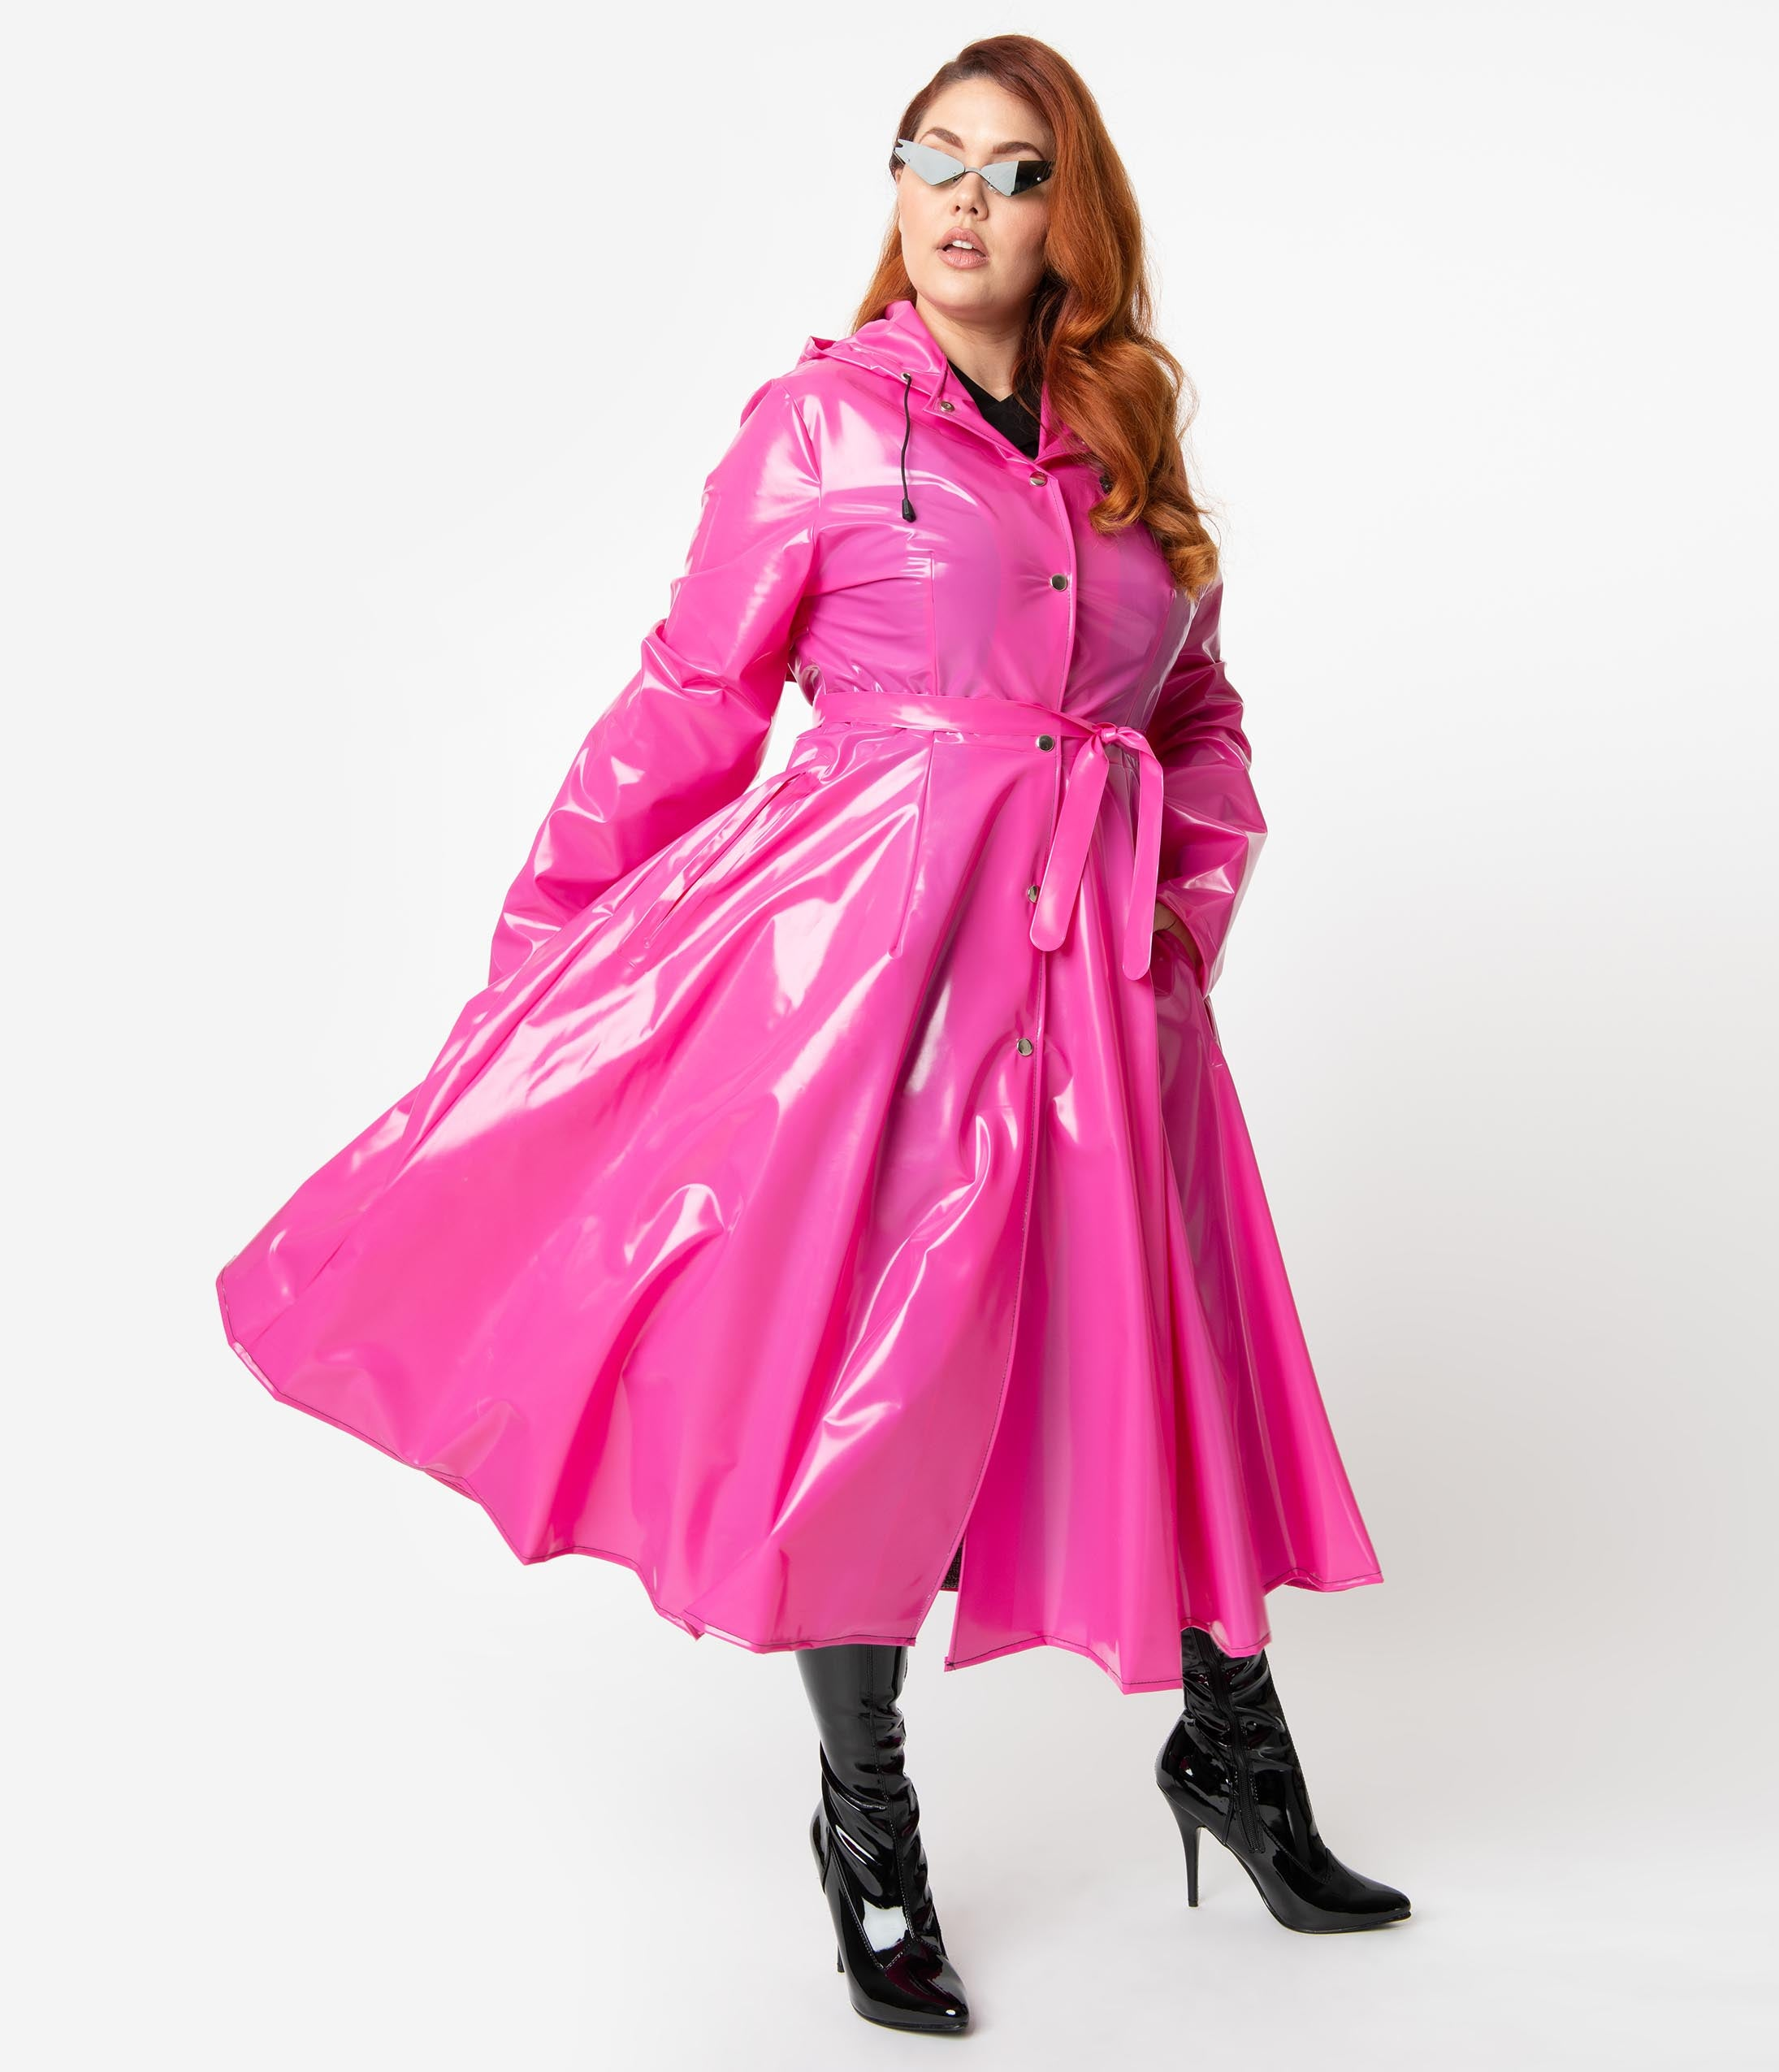 Vintage Coats & Jackets | Retro Coats and Jackets Plus Size Hot Pink Vinyl Long Sleeve Ruby Raincoat $98.00 AT vintagedancer.com